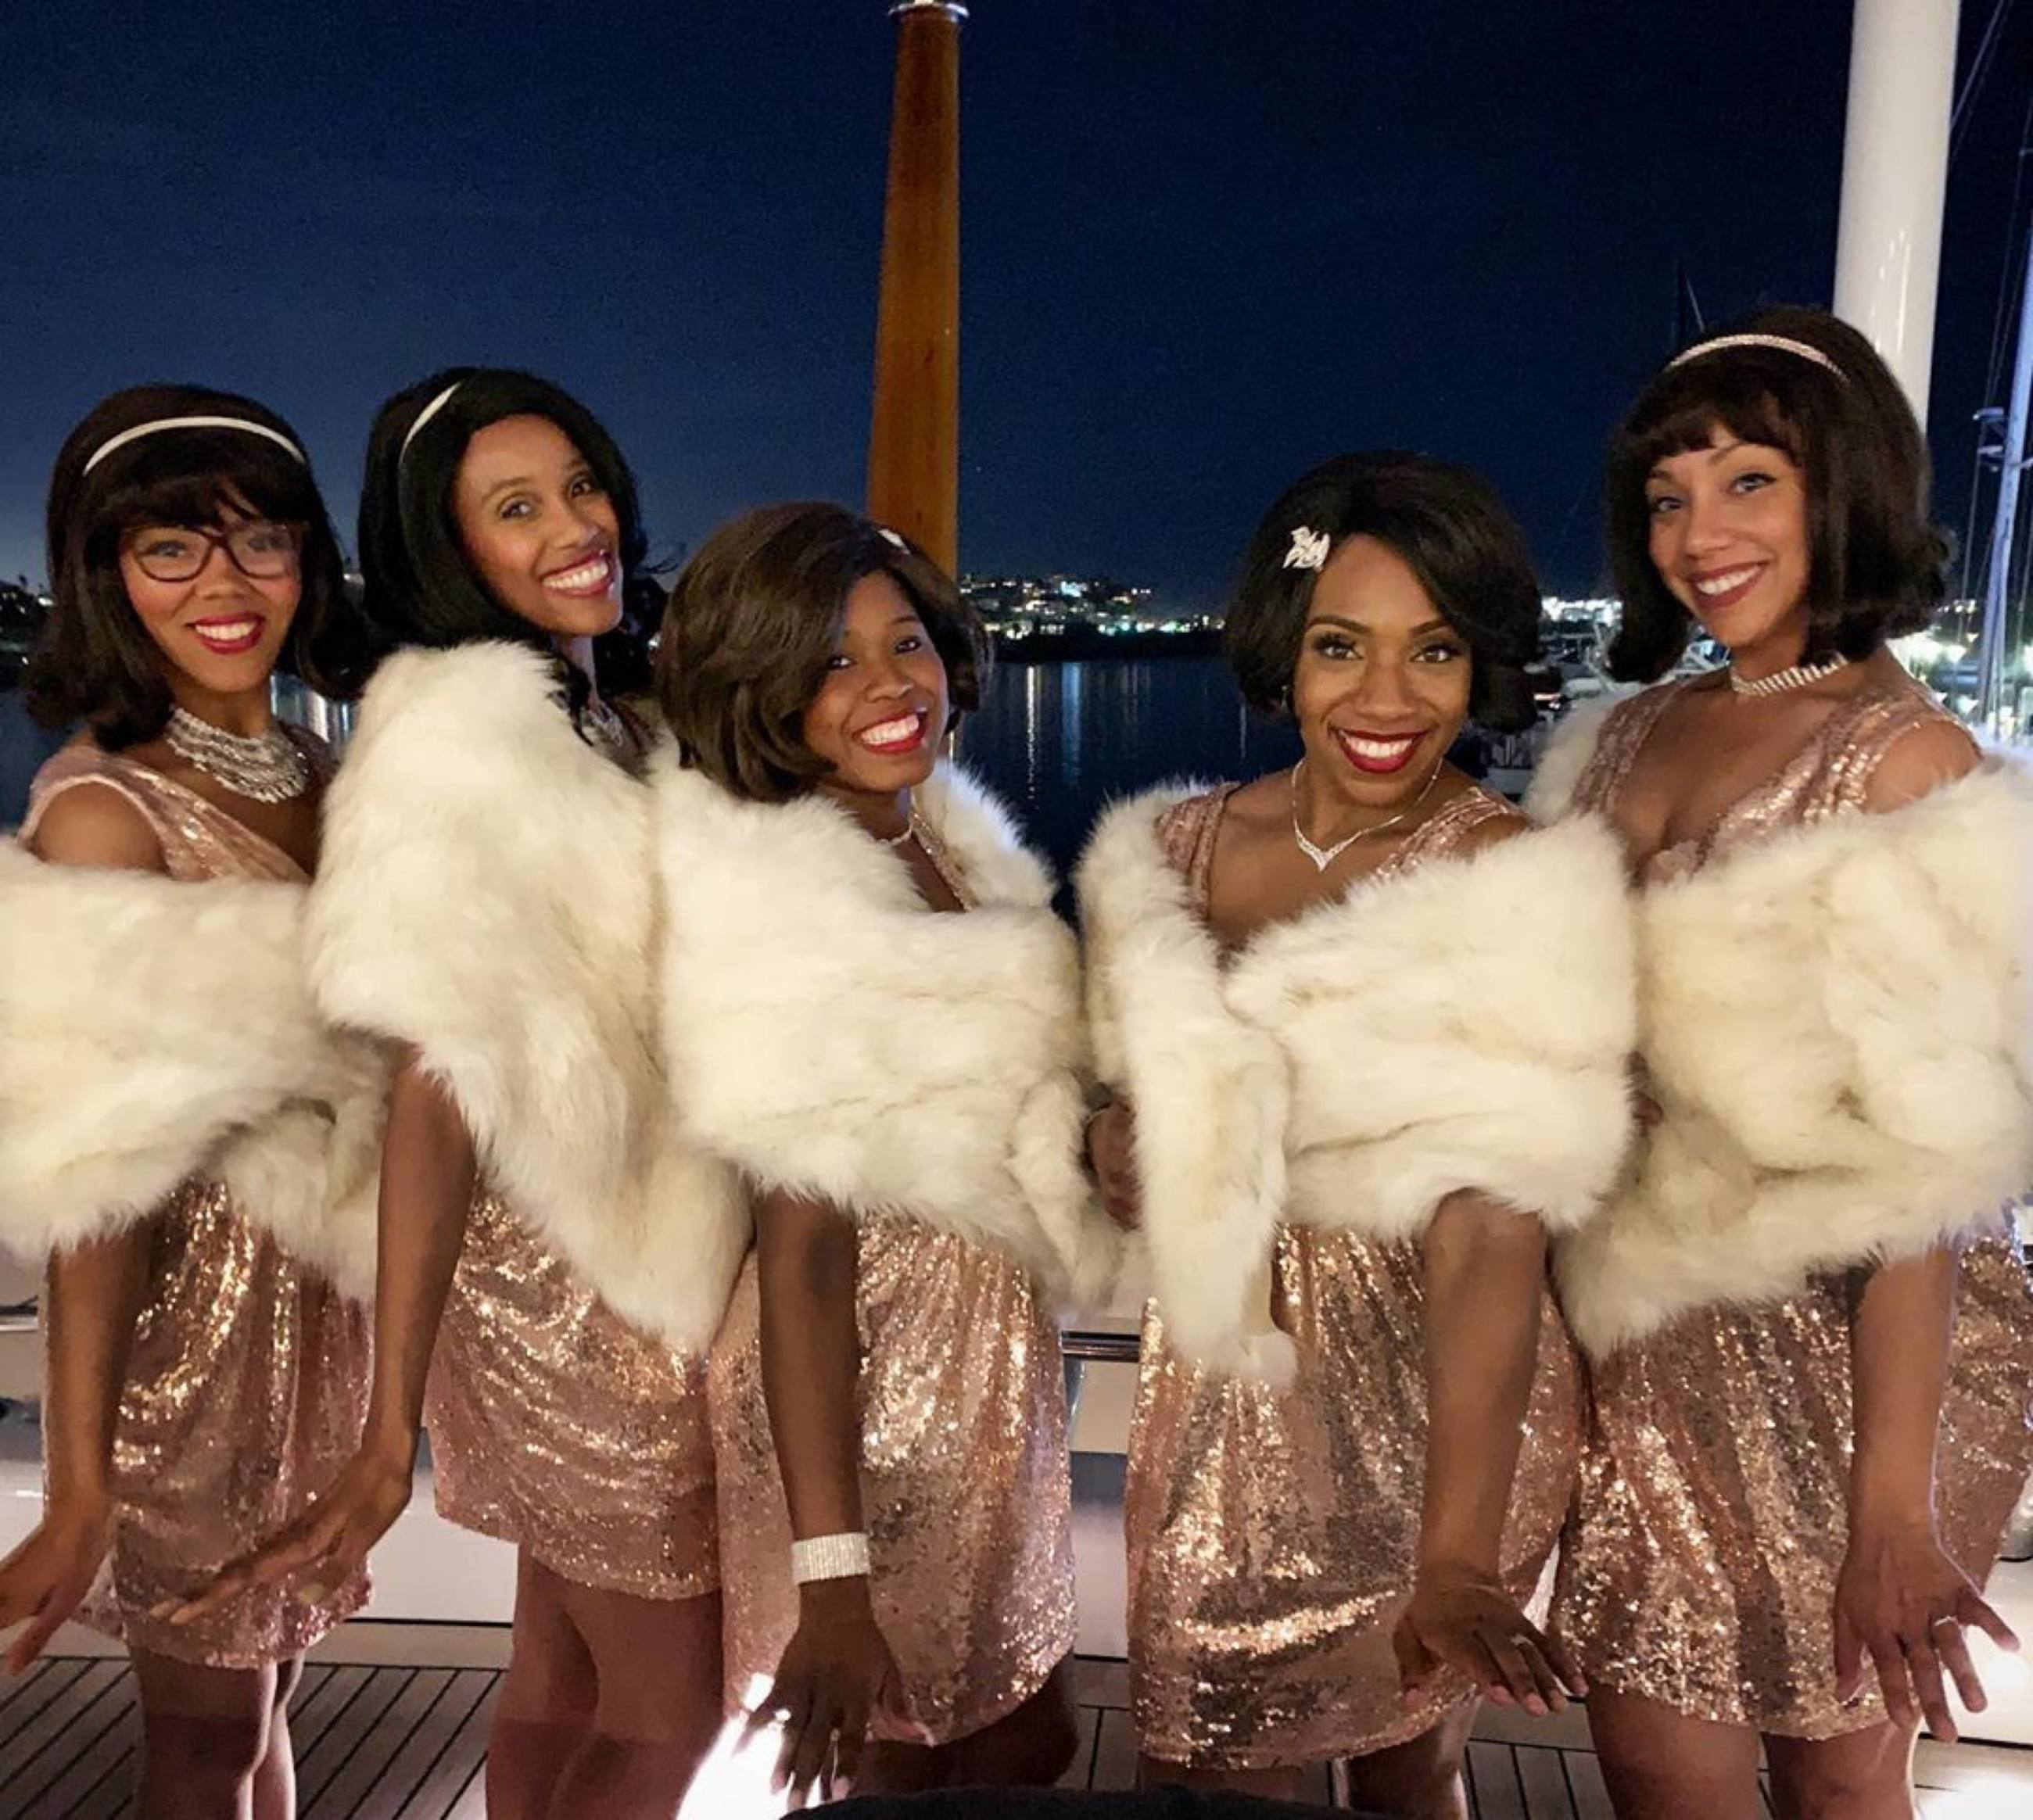 A cappella holiday carols by The Noelles at the Santa Monica Pier